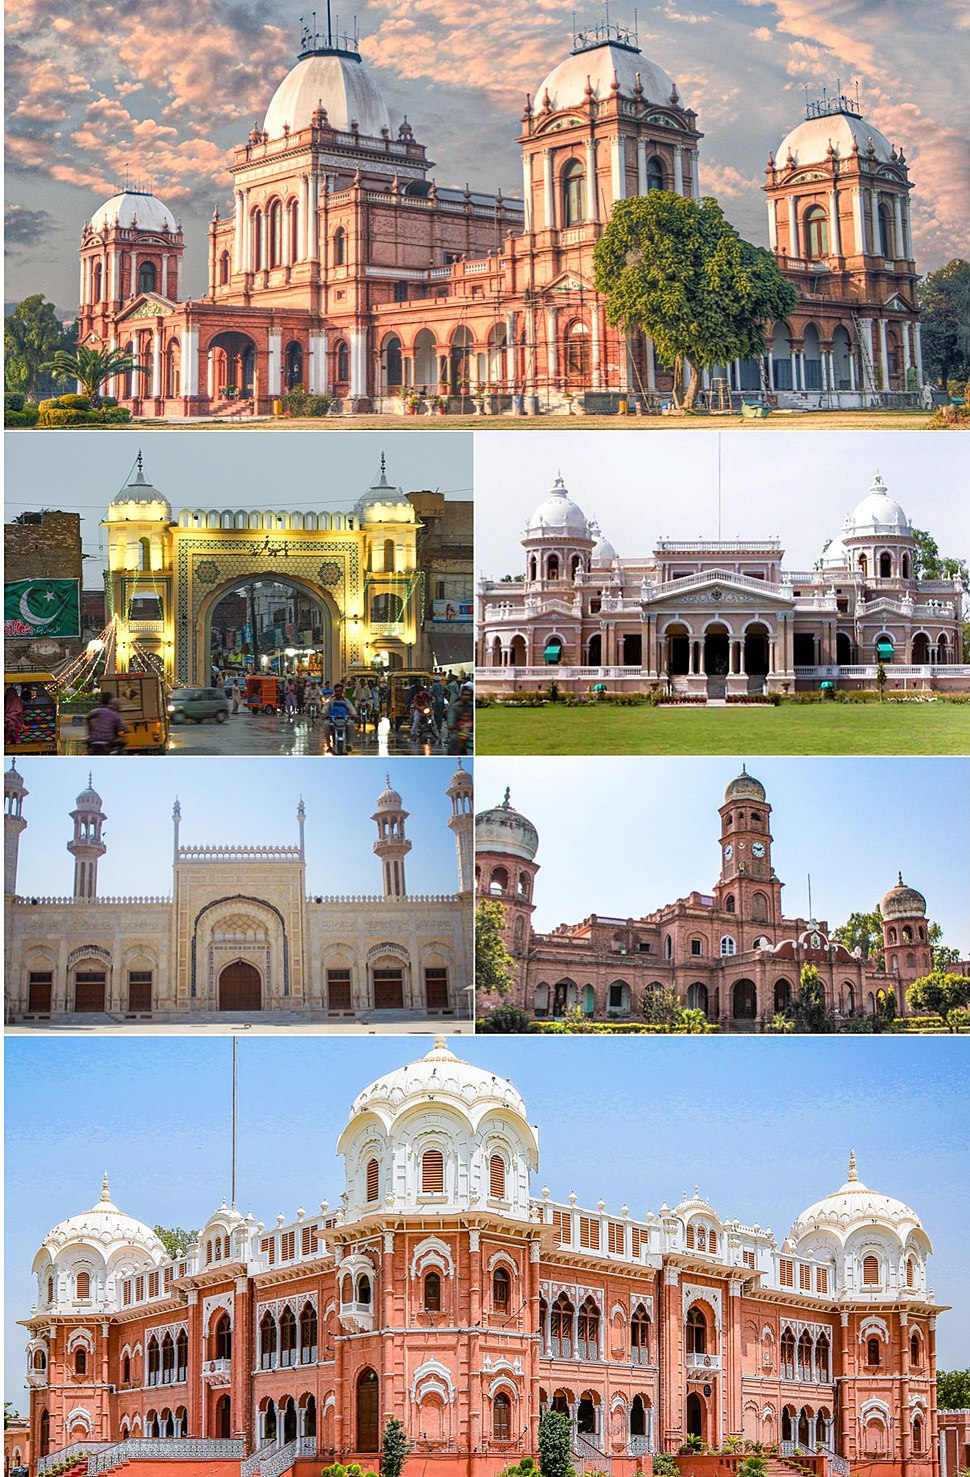 Clockwise from top: Noor Mahal Palace,Gulzar Mahal, Sadiq Dane High School, Darbar Mahal Palace, Sadiq Mosque, Fareed Gate